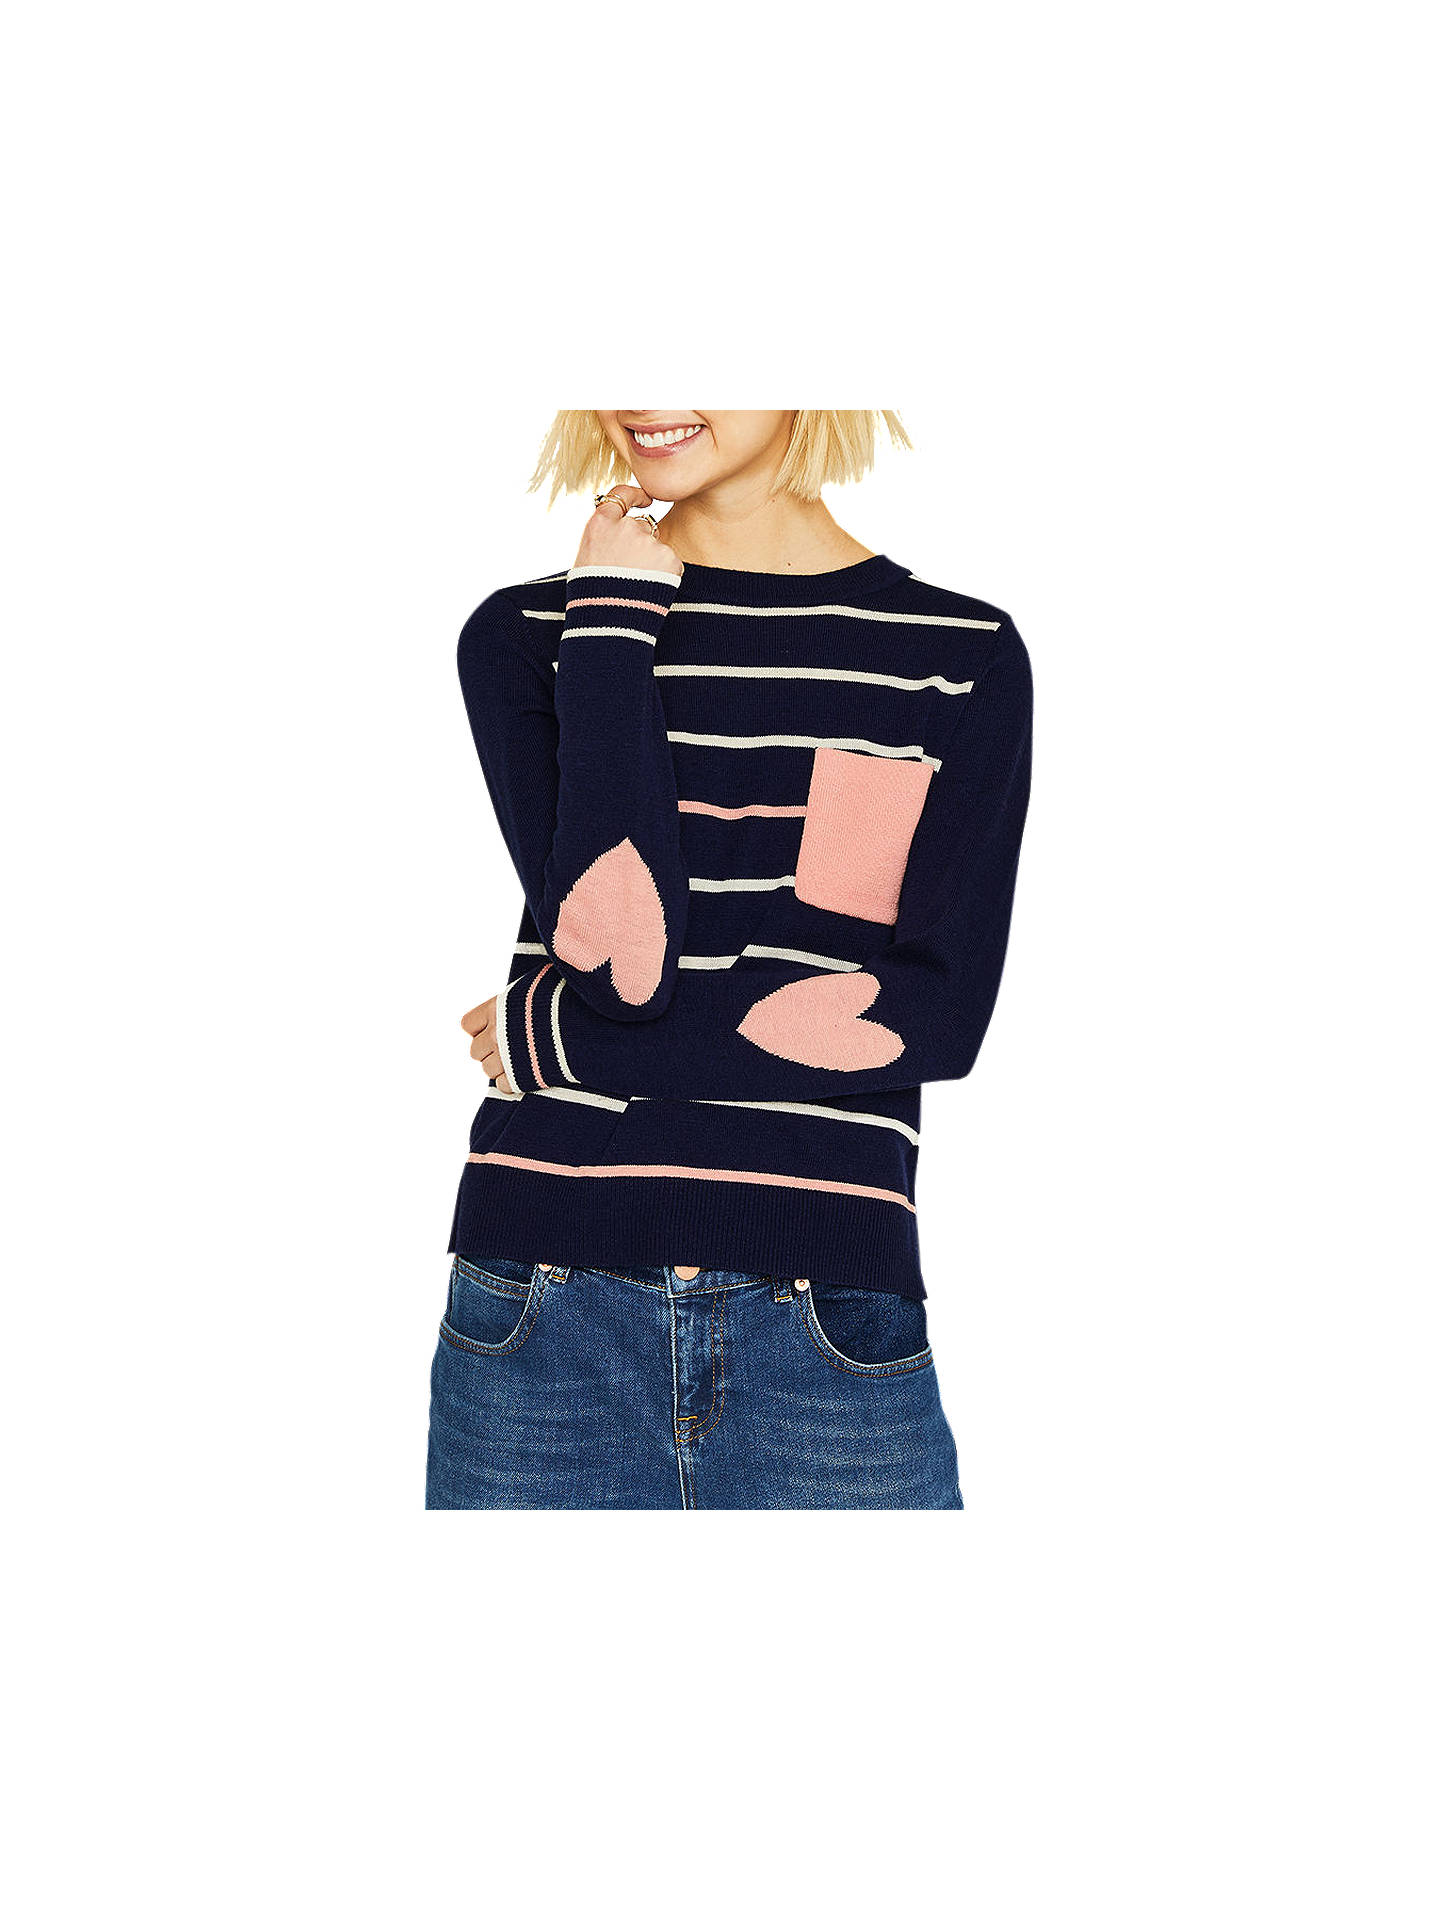 BuyOasis Heart Detail Striped Jumper, Navy, XS Online at johnlewis.com